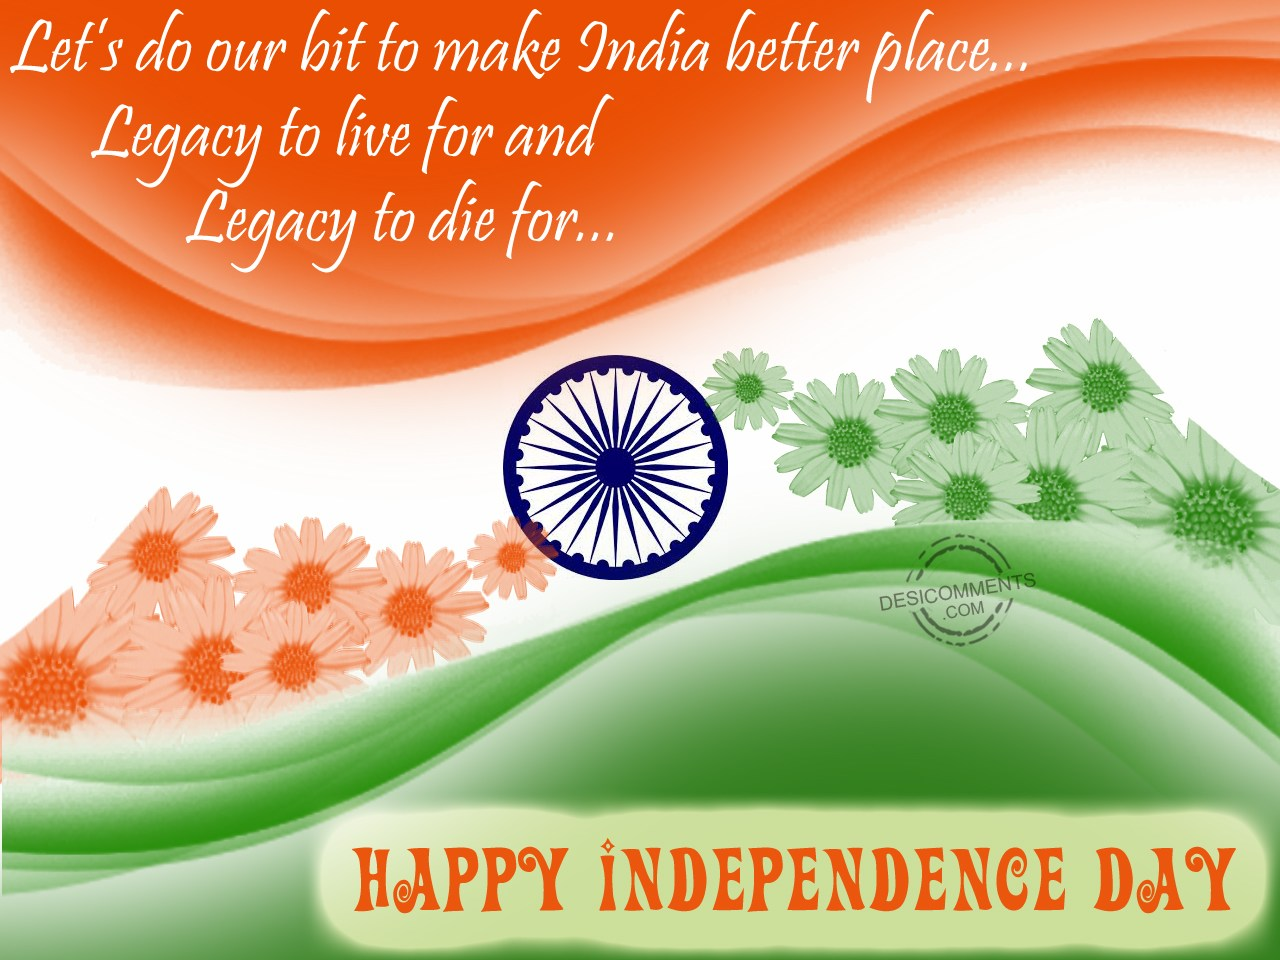 Happy 71st independence day 2017 wishes quotes sms sayings independence day images greetings hd wallpapers kristyandbryce Gallery